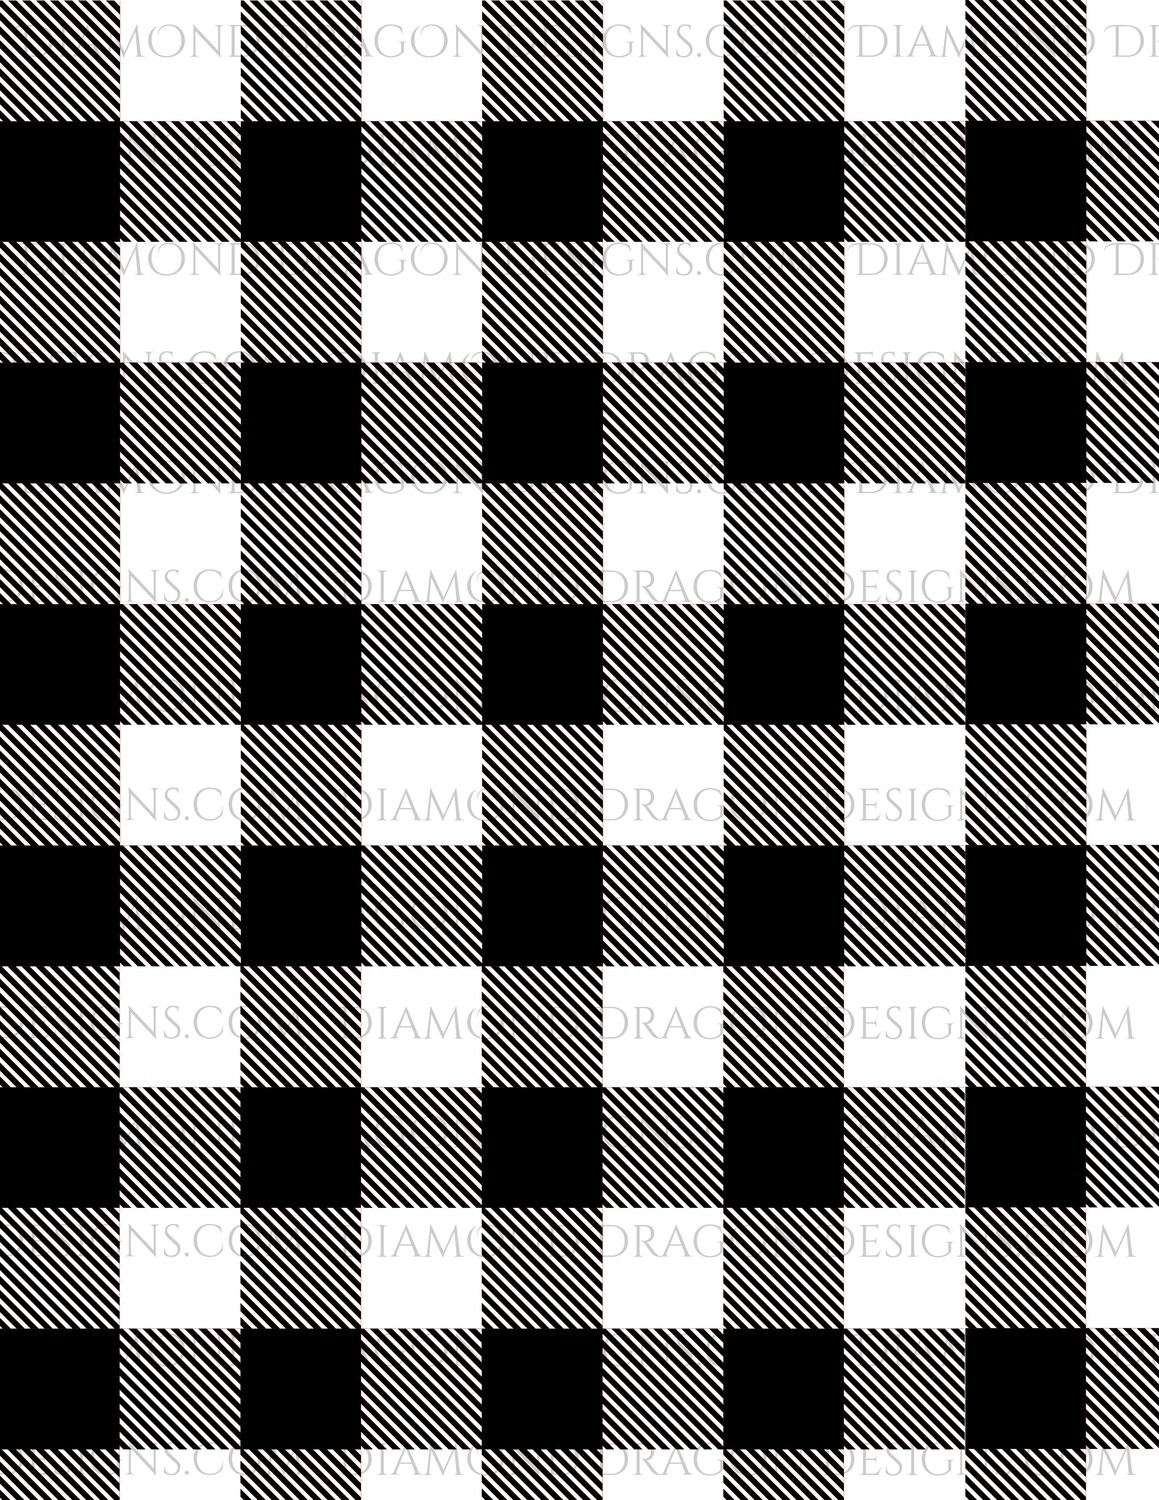 Full Page -  Buffalo Plaid, Black and White, Full Page Design - Waterslide